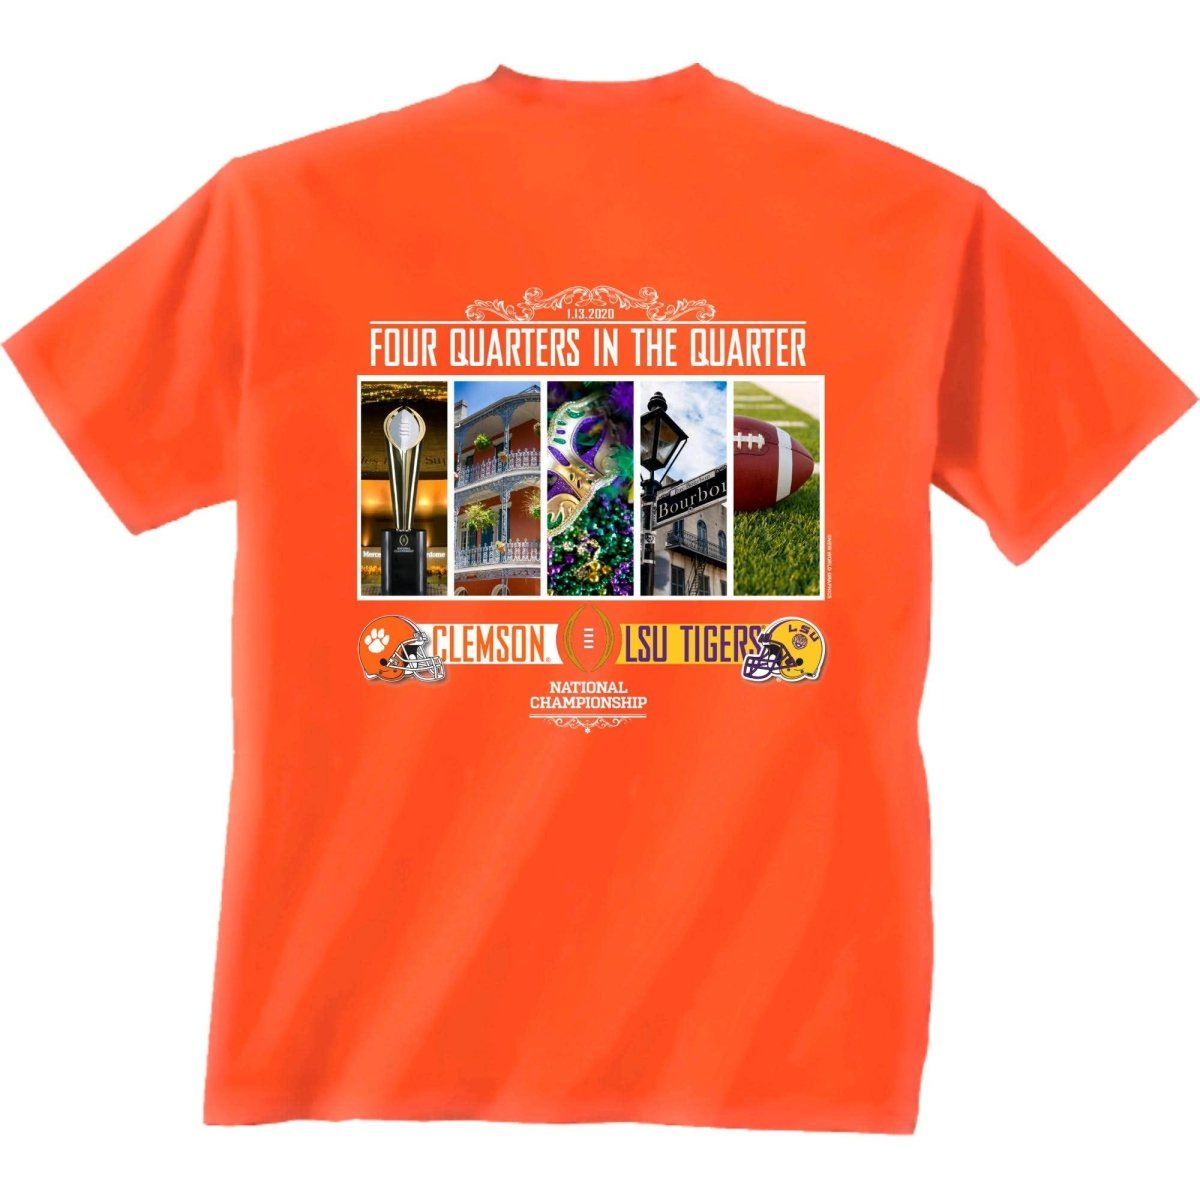 2019 National Championship Bound 4 Quarters in the Quarter Tee - Mr. Knickerbocker